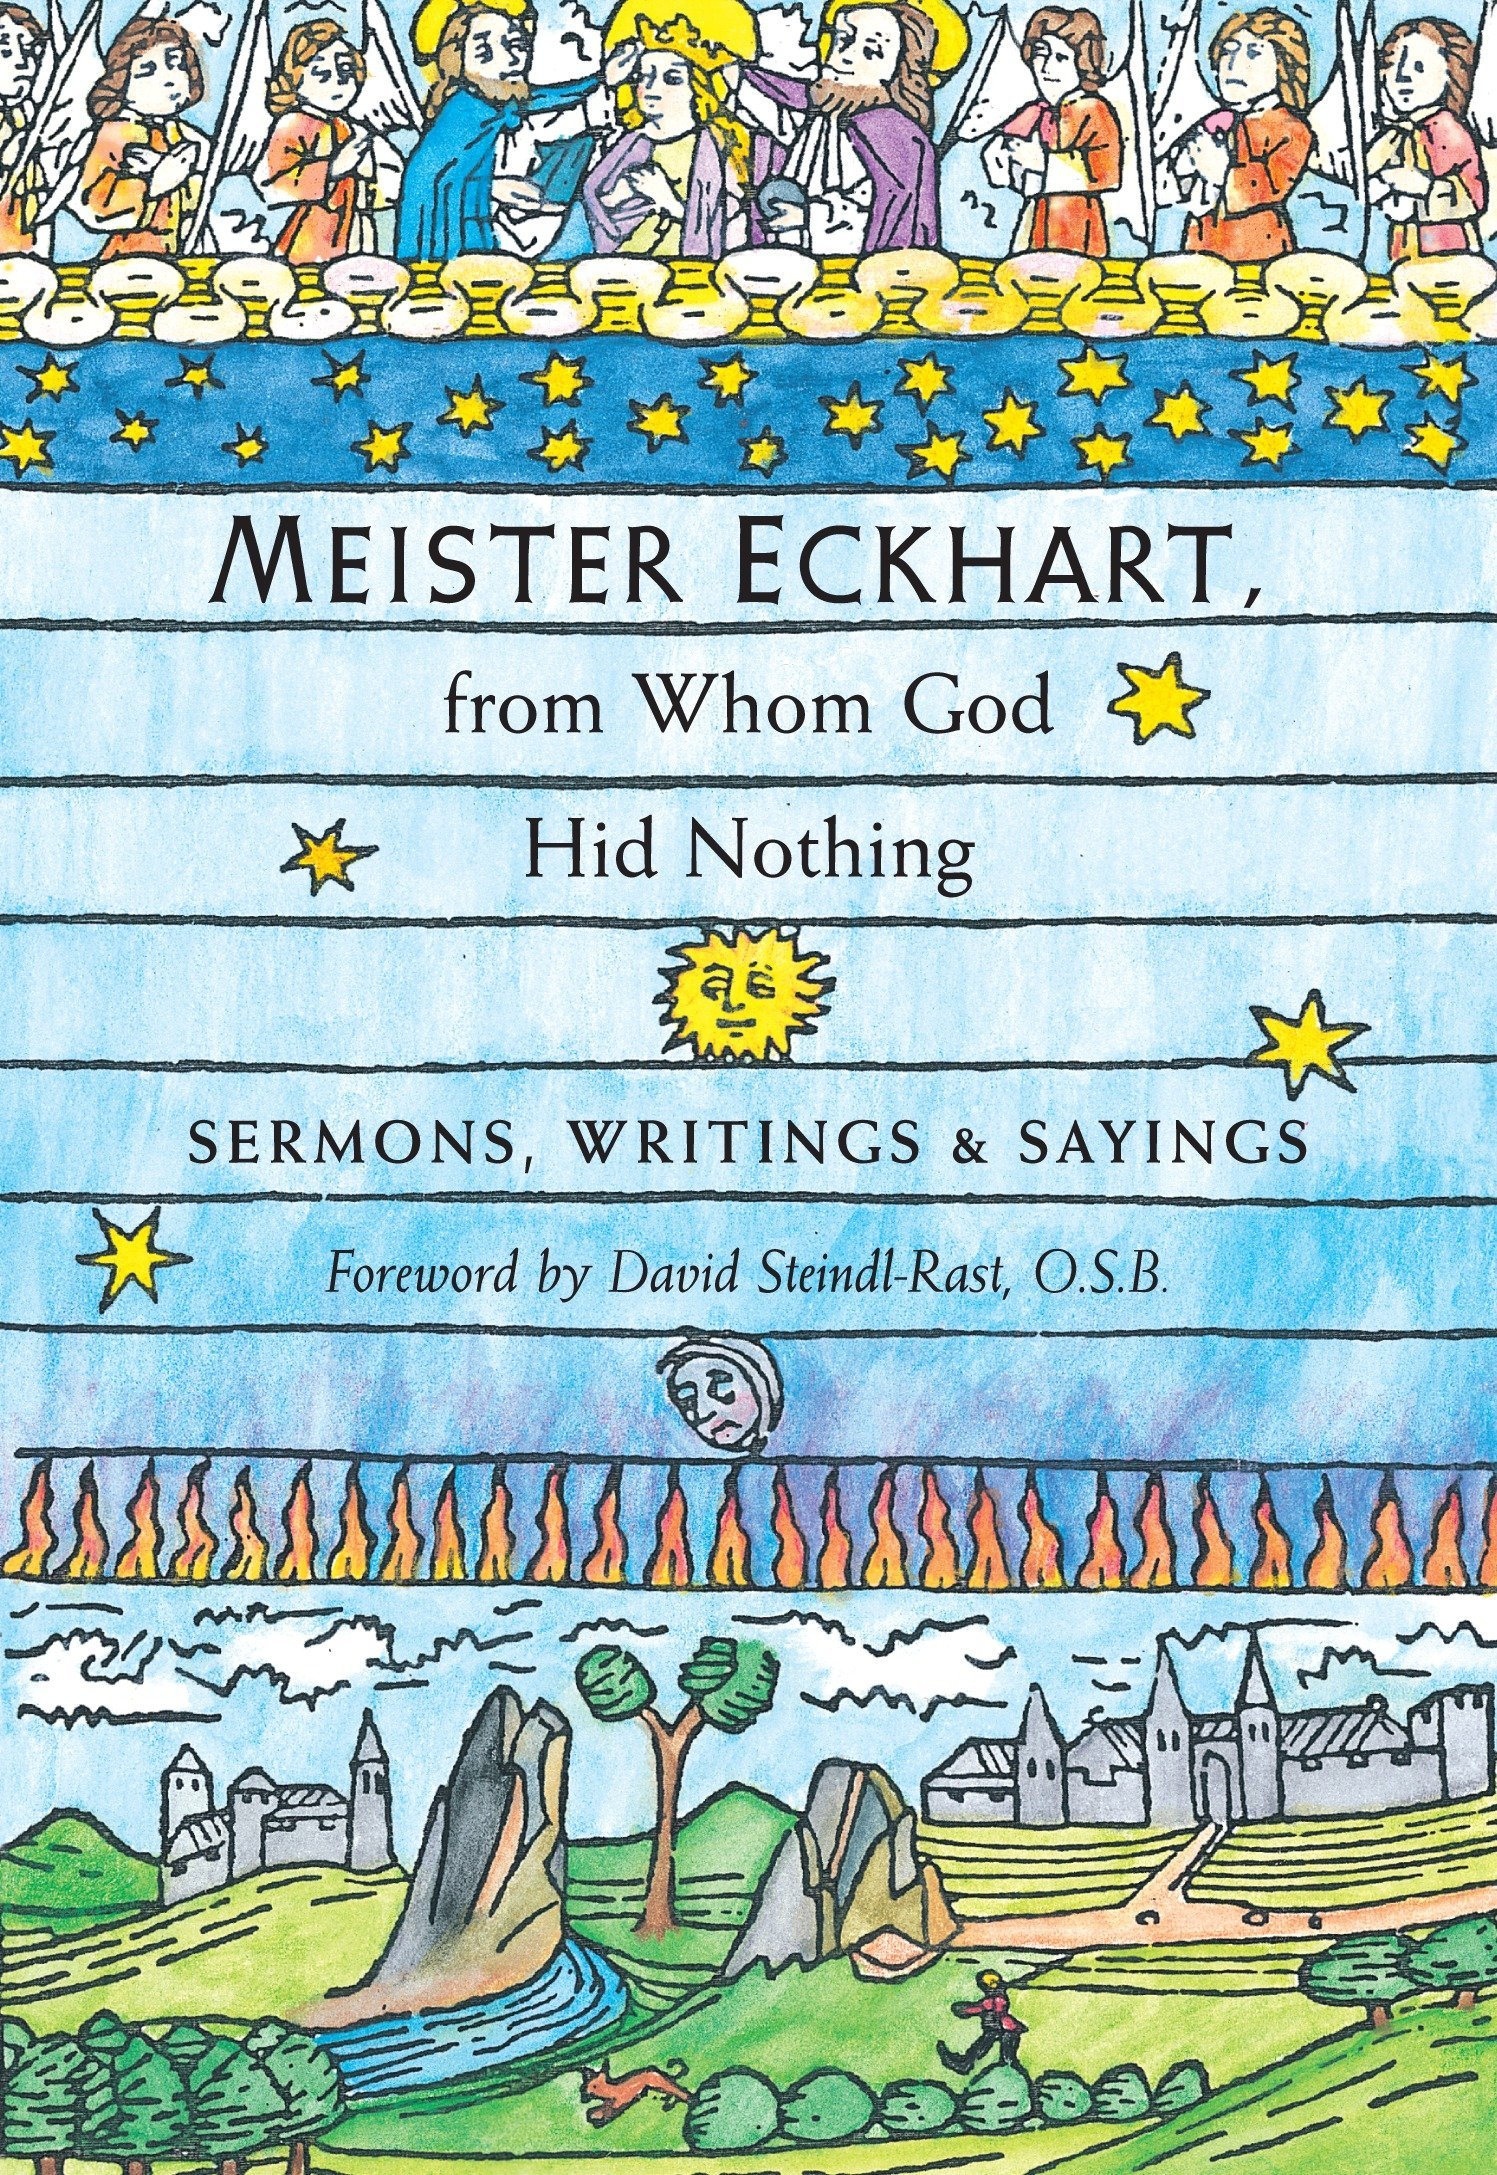 Meister Eckhart, from Whom God Hid